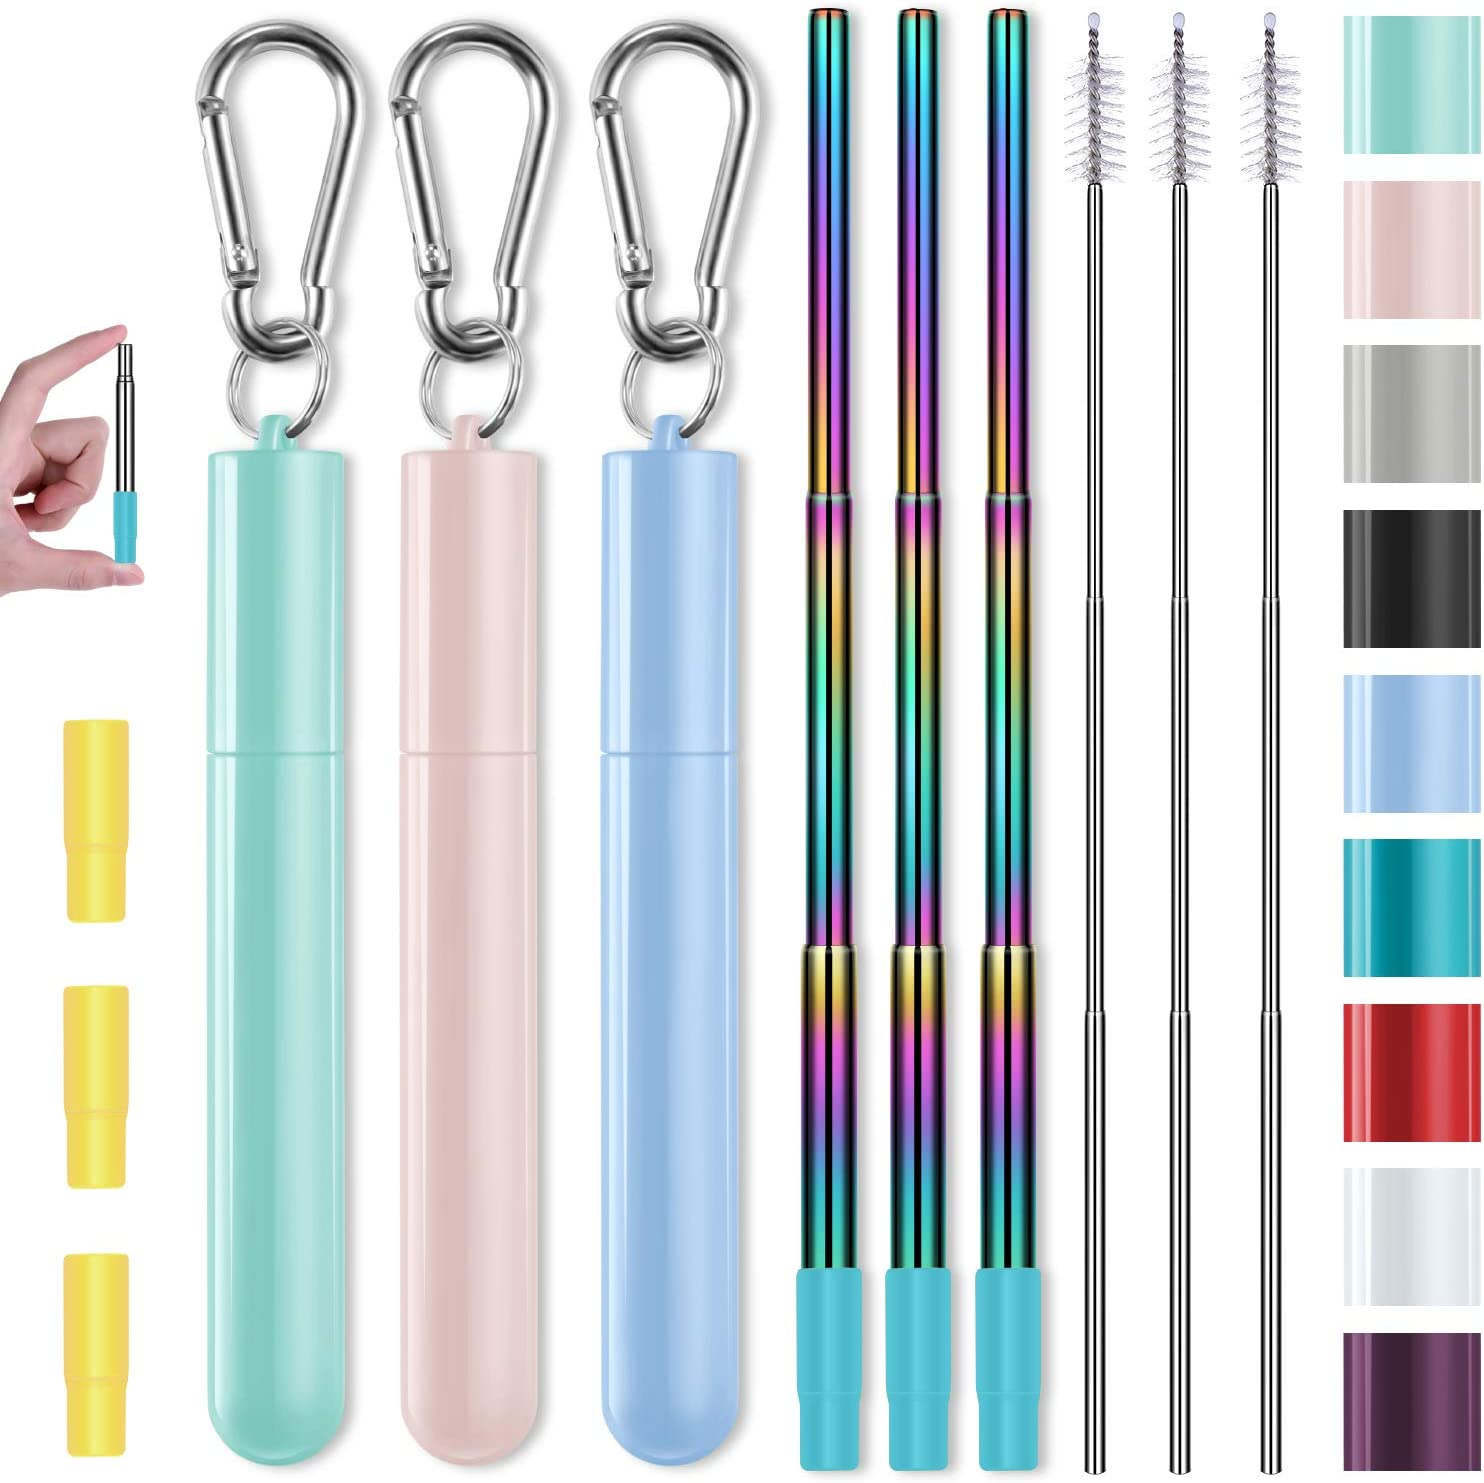 Metal Straws, Funbiz 3 Pack Reusable Collapsible Stainless Steel Straw with Plastic Case Silicone Tip and Long Cleaning Brush, Telescopic Portable Pocket Drinking Straws for Travel, Green/Pink/Purple